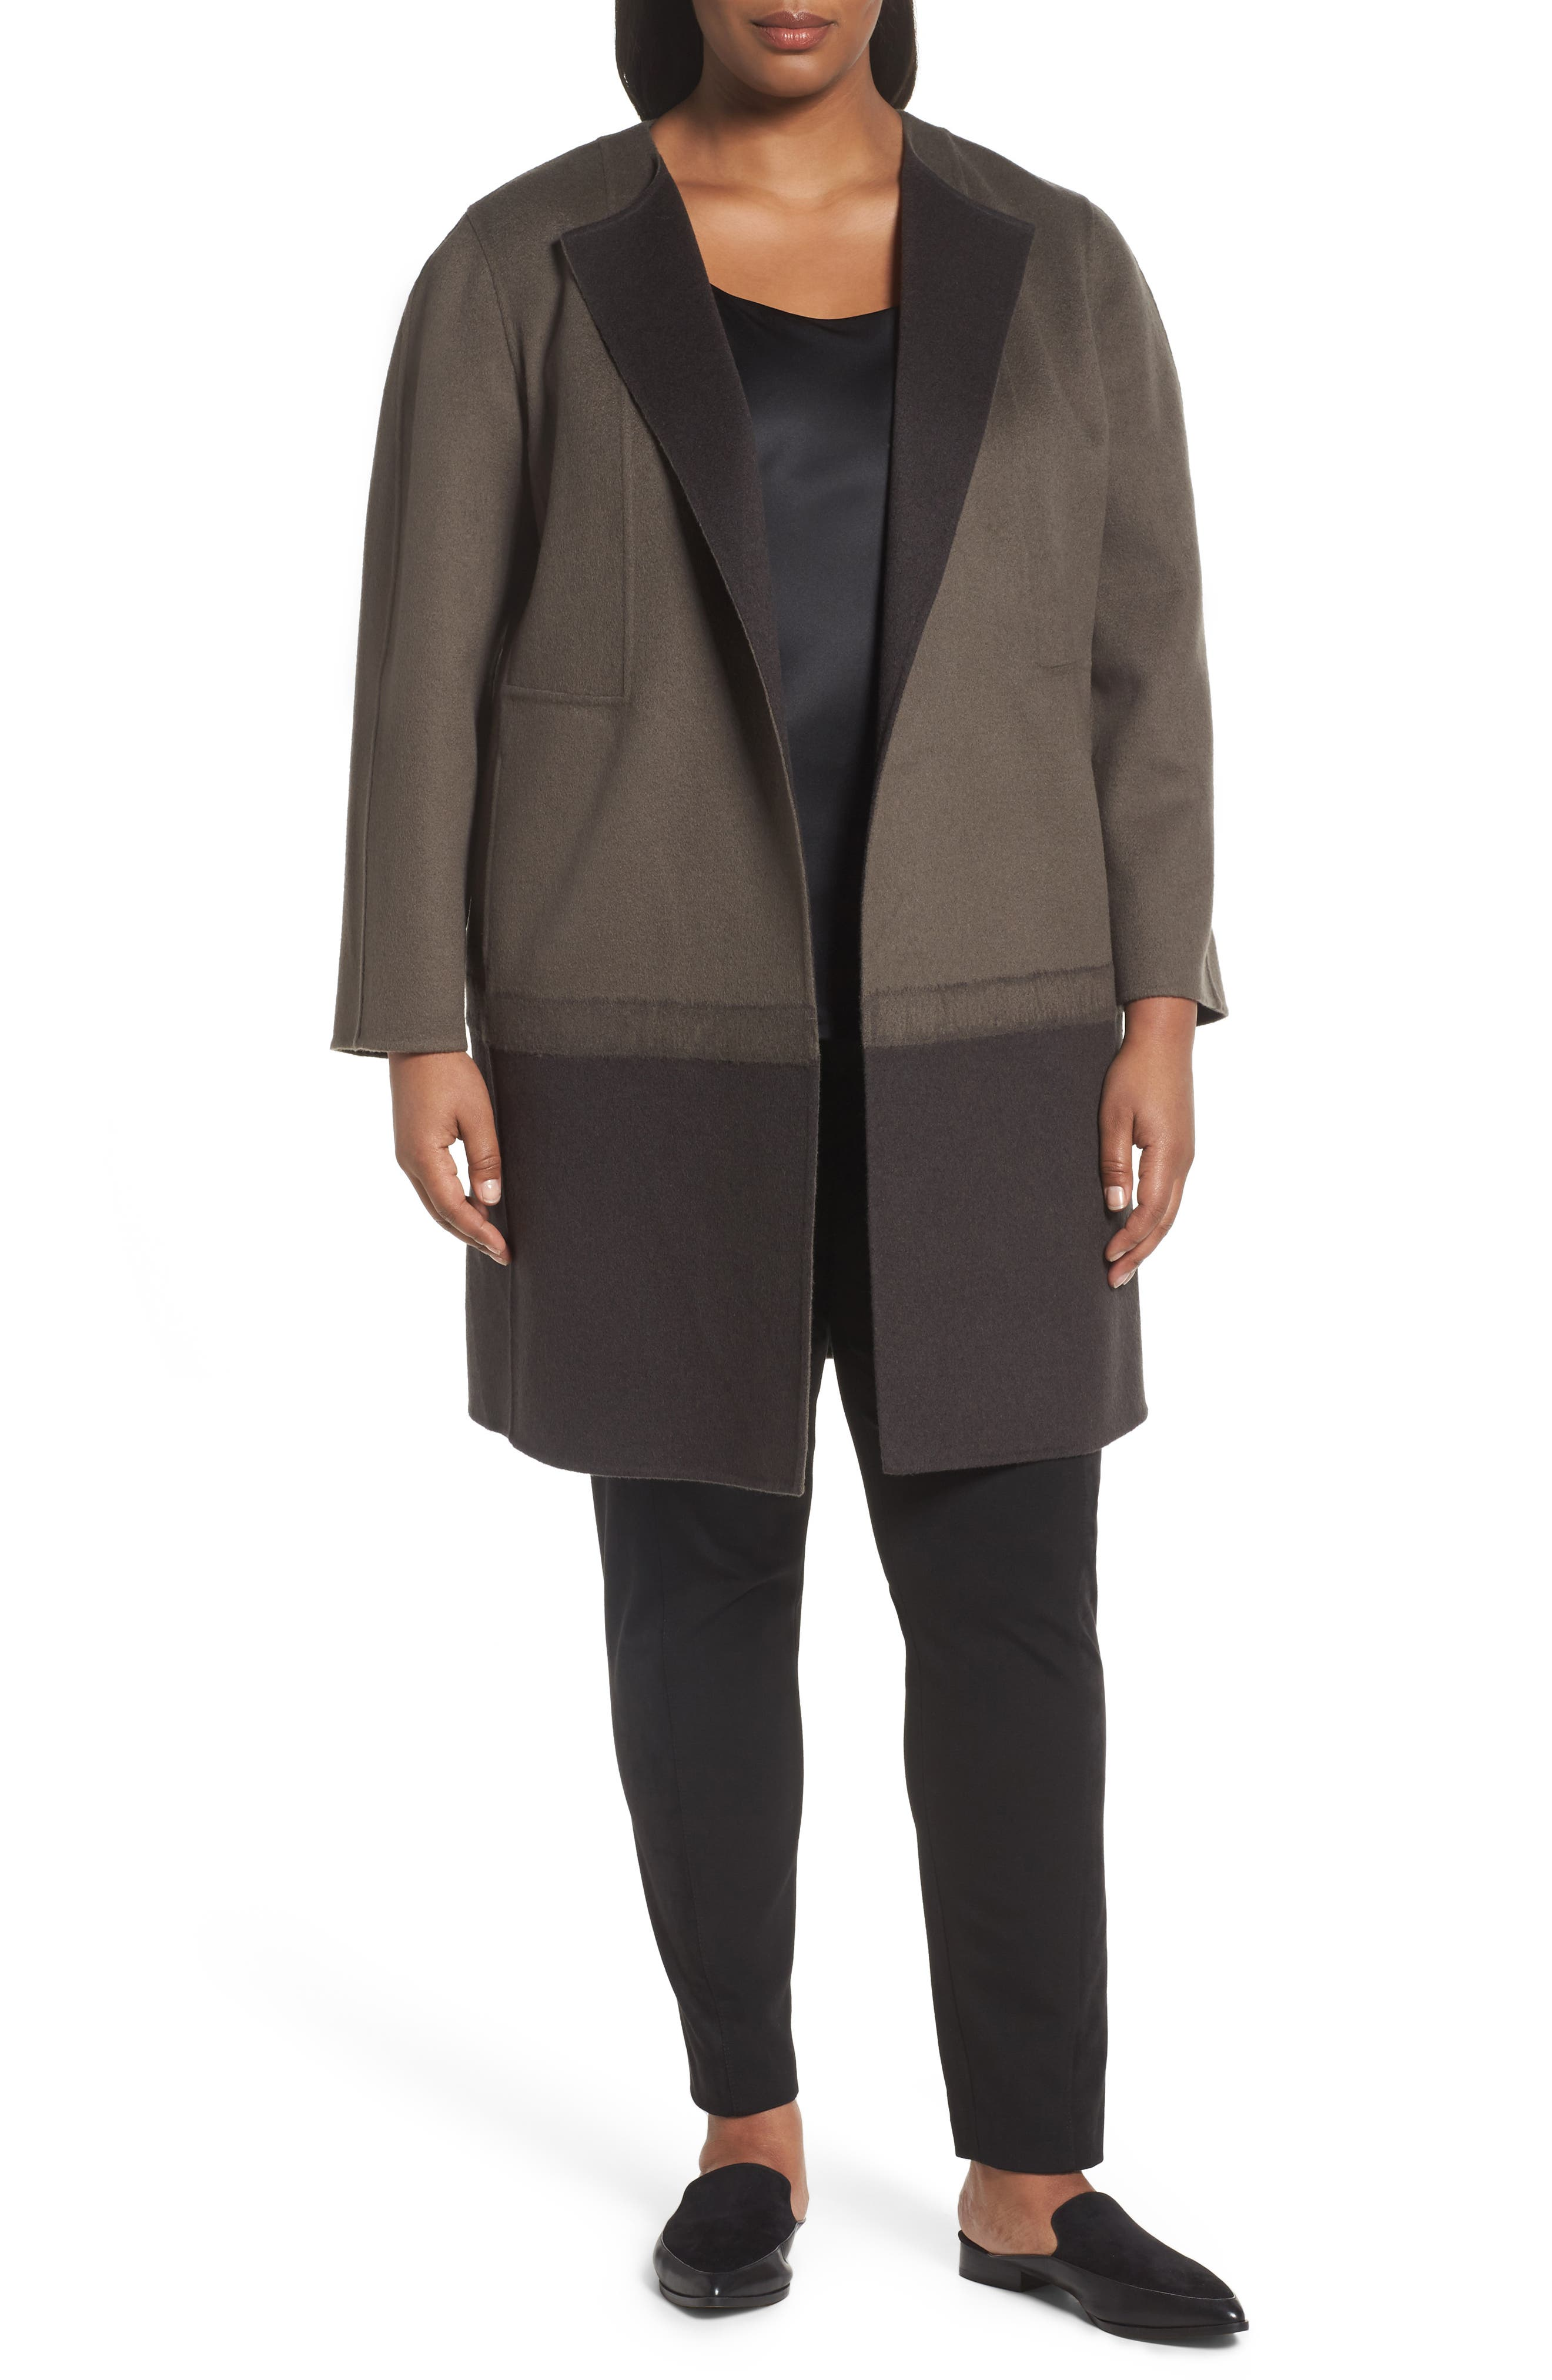 LAFAYETTE 148 NEW YORK Hayes Wool & Cashmere Coat